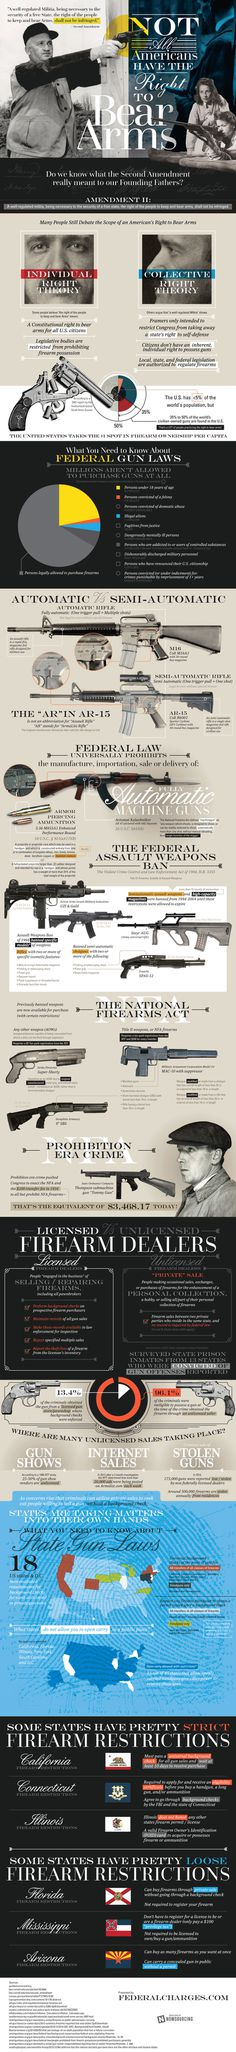 Do you have the right to keep and bear arms? Maybe not, according to this infographic.